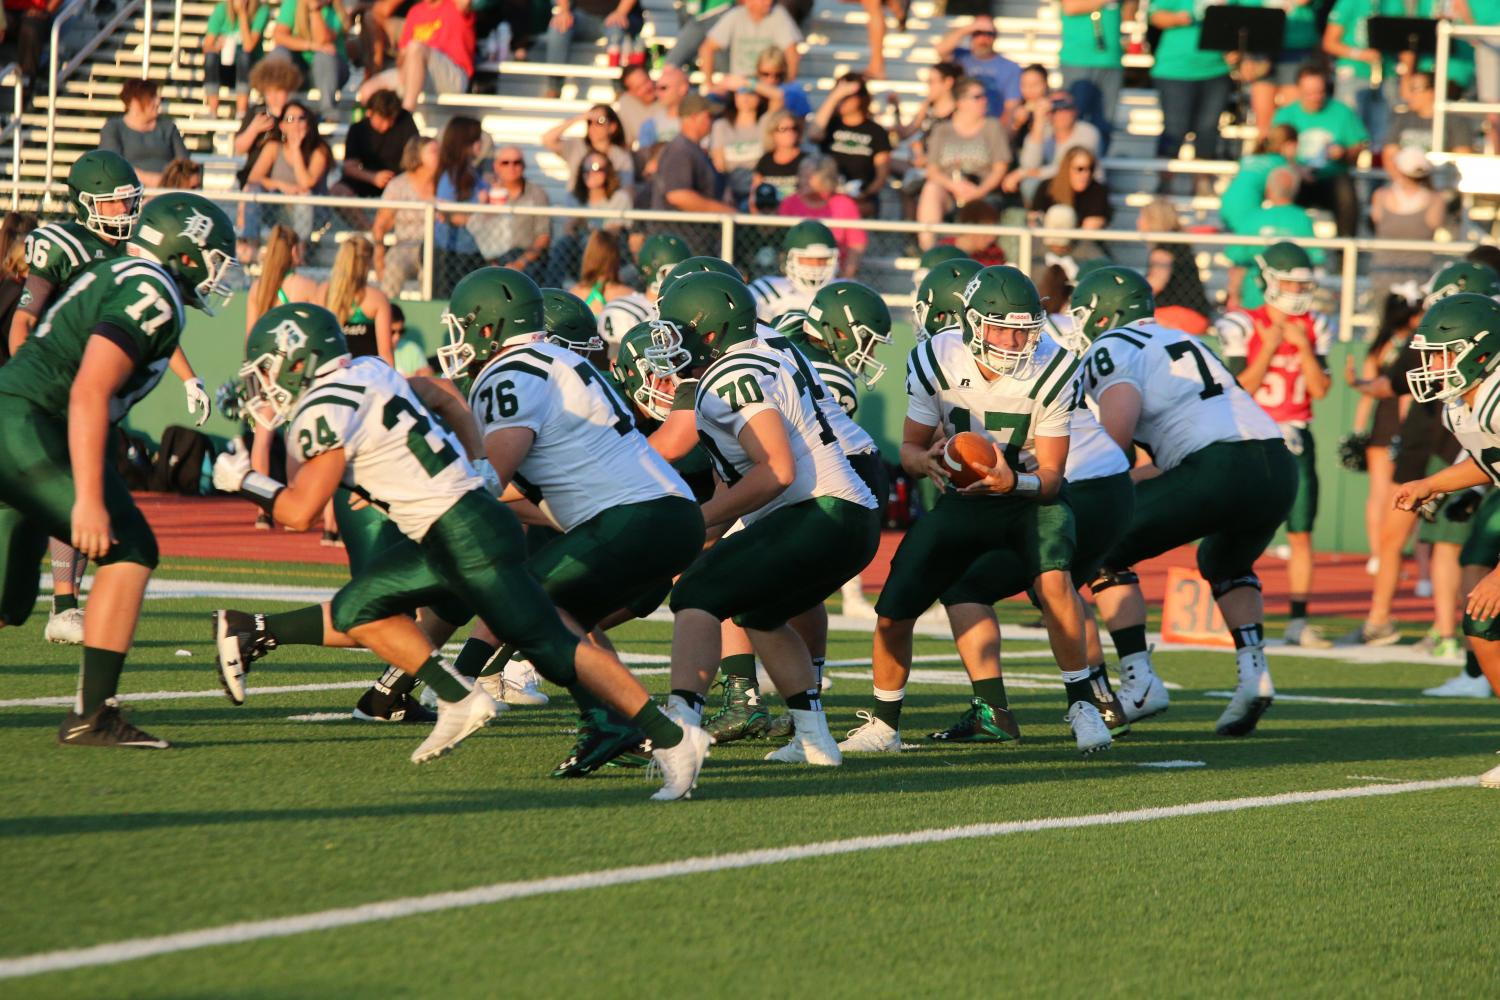 Senior+quarterback+Bryce+Mohl+receives+the+snap+as+the+offensive+line+springs+to+action.